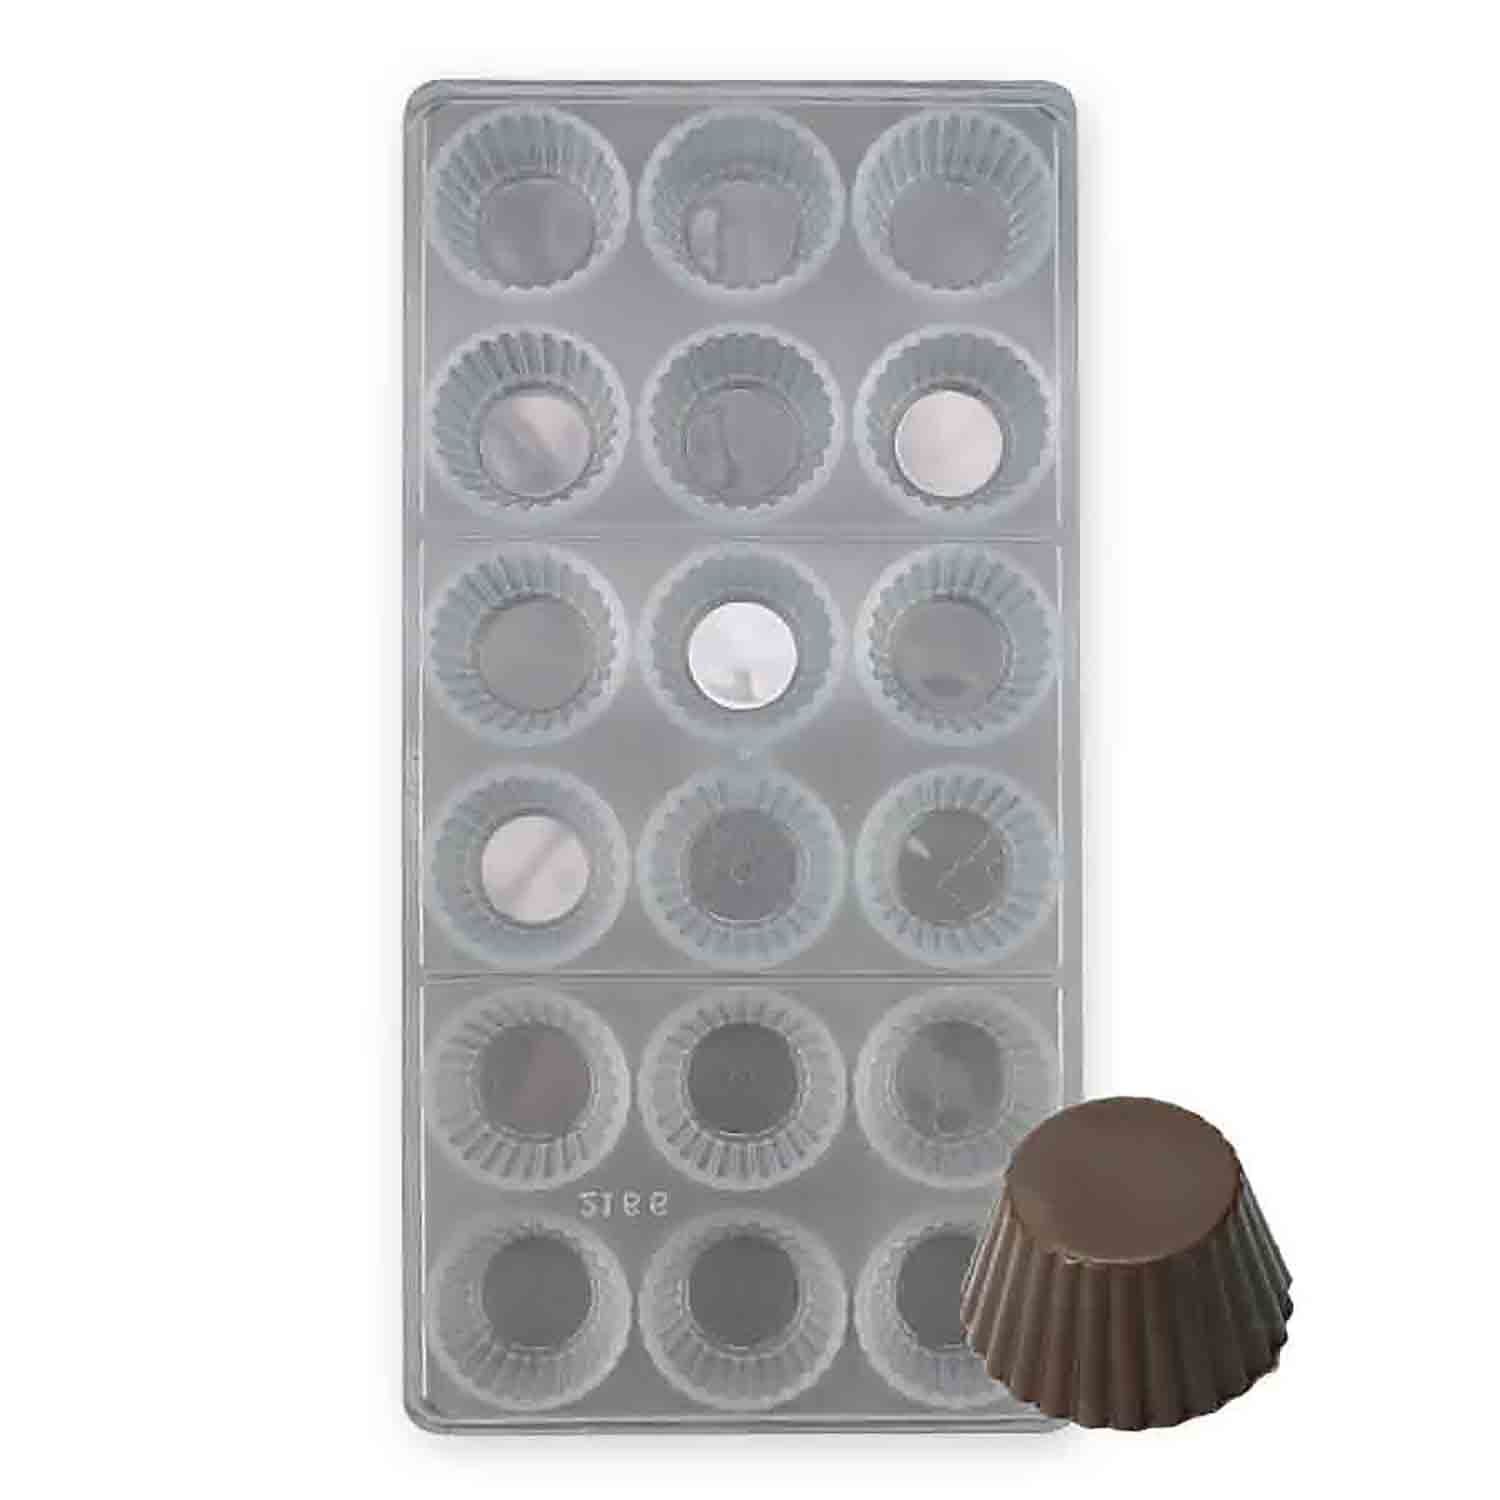 Fluted Round Polycarbonate Chocolate Candy Mold